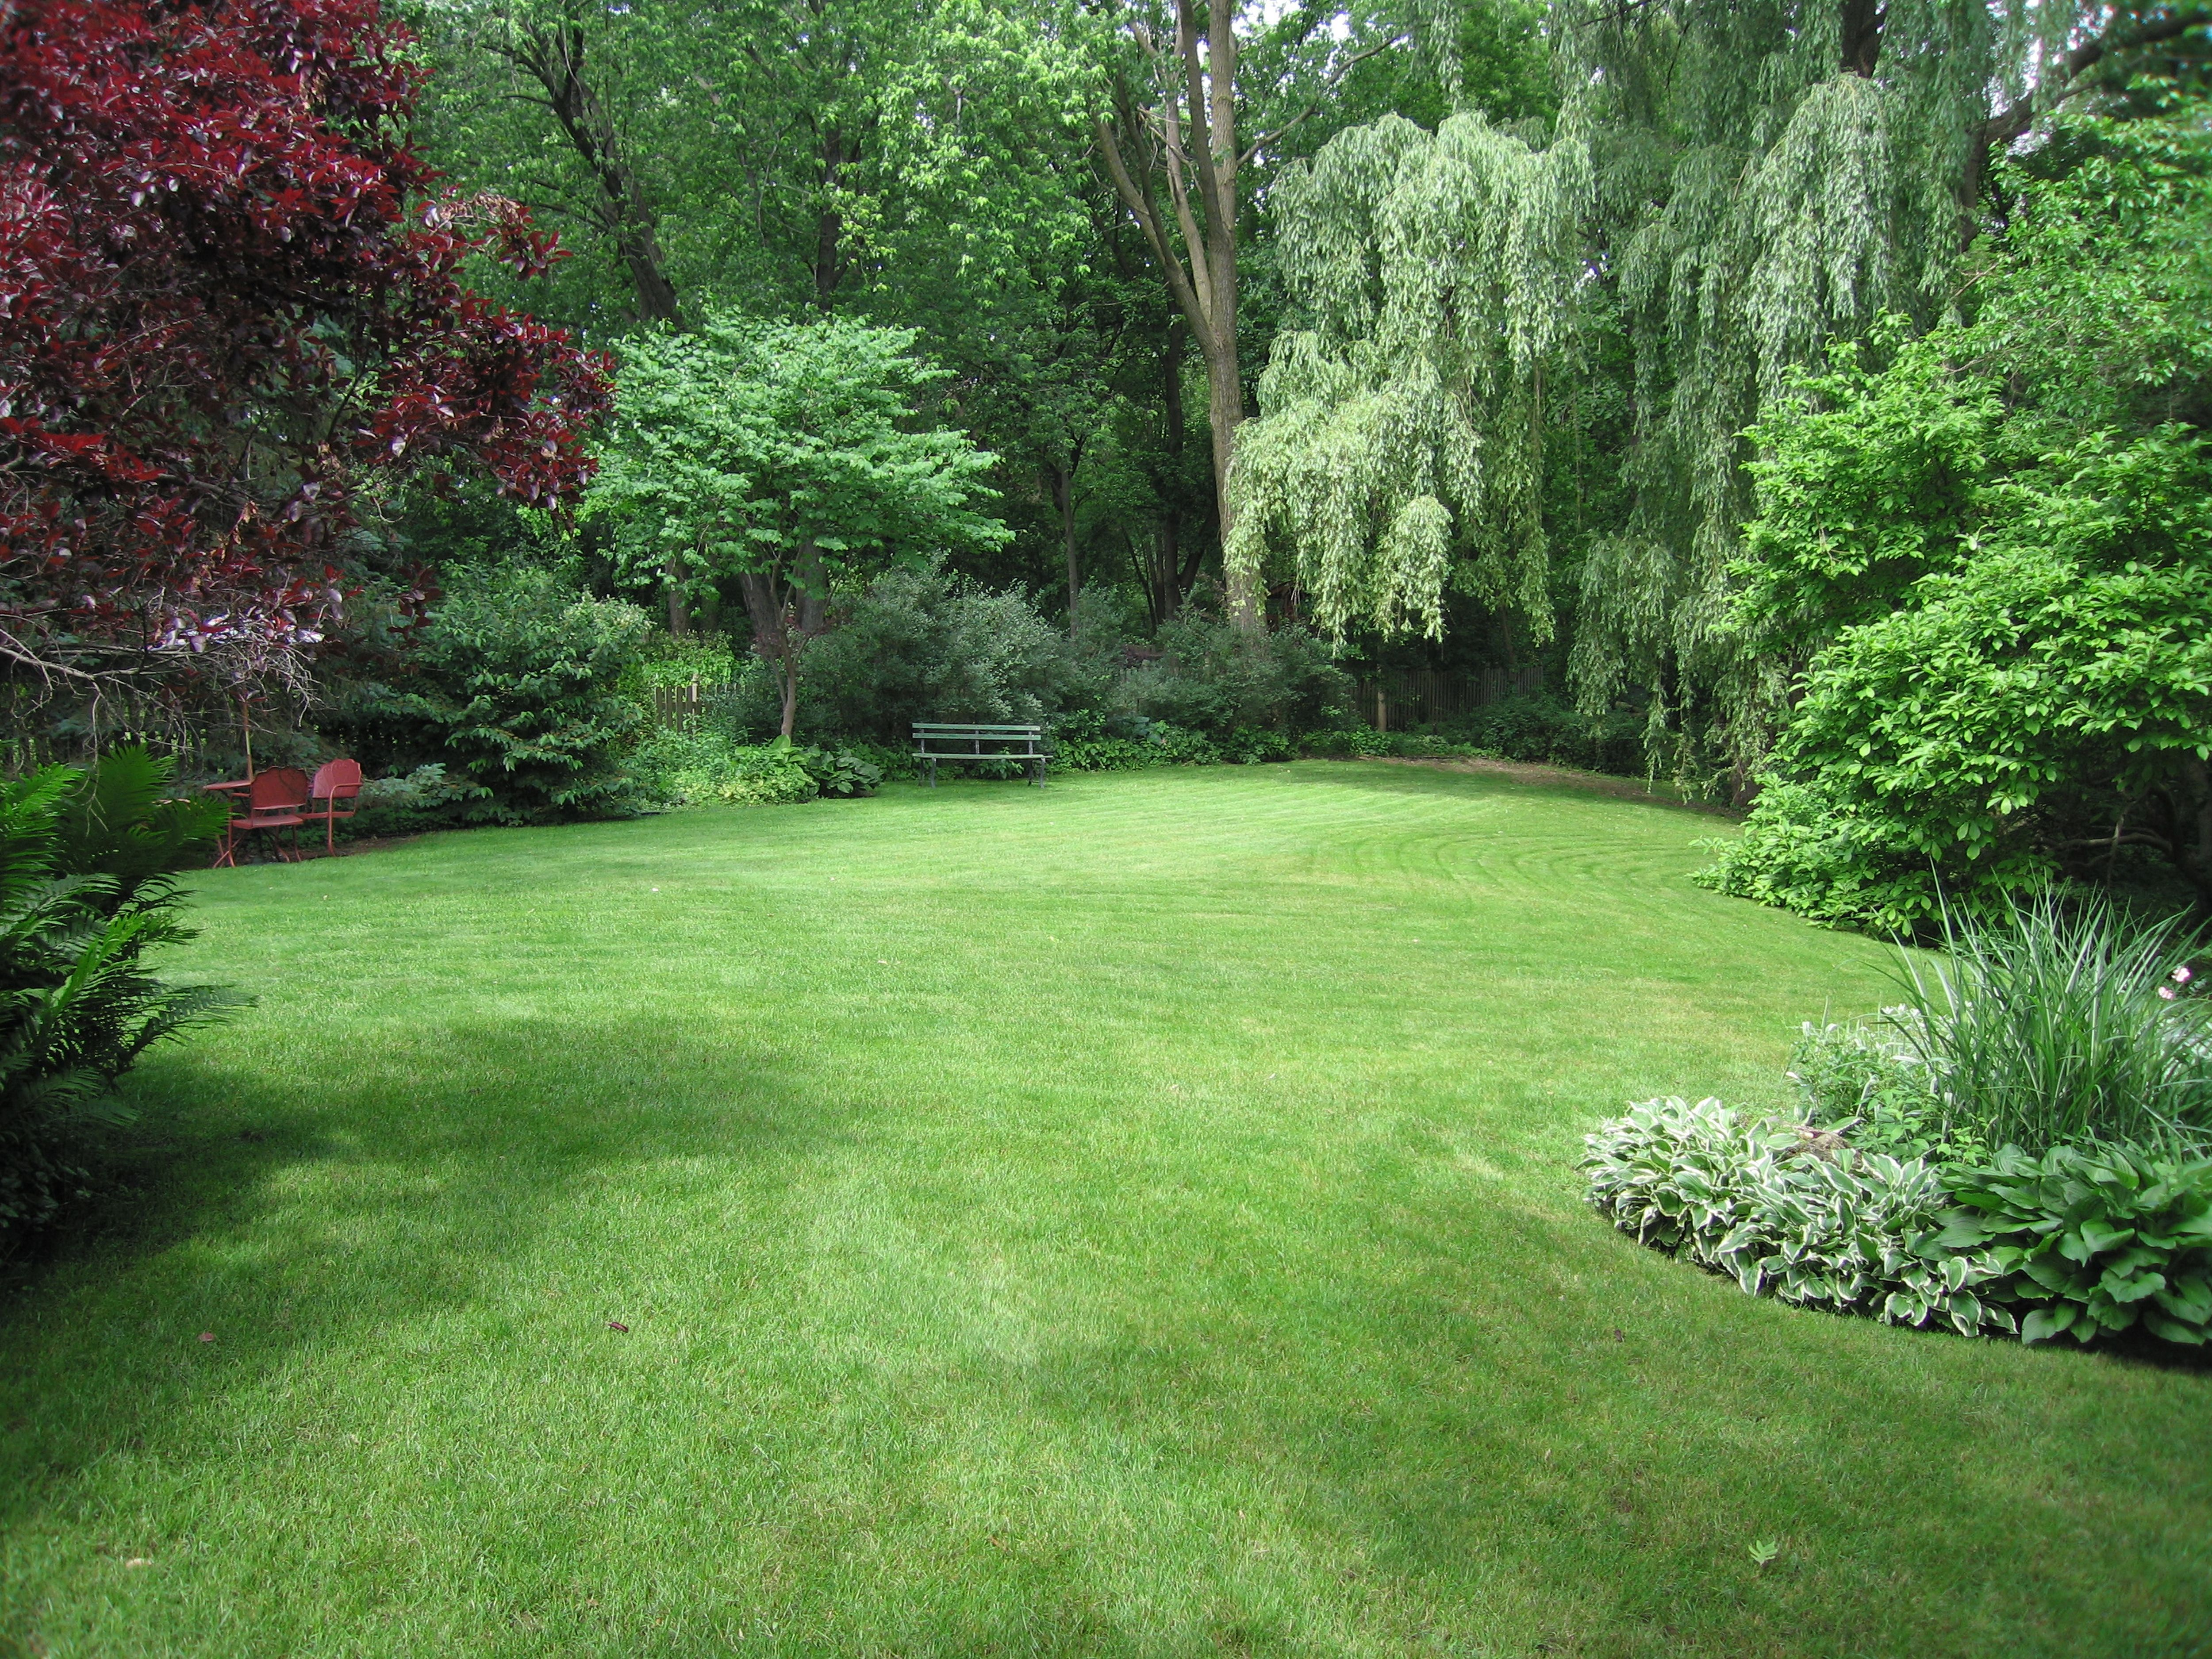 pacific northwest landscaping ideas - Google Search ... on Big Backyard Landscaping Ideas id=30849